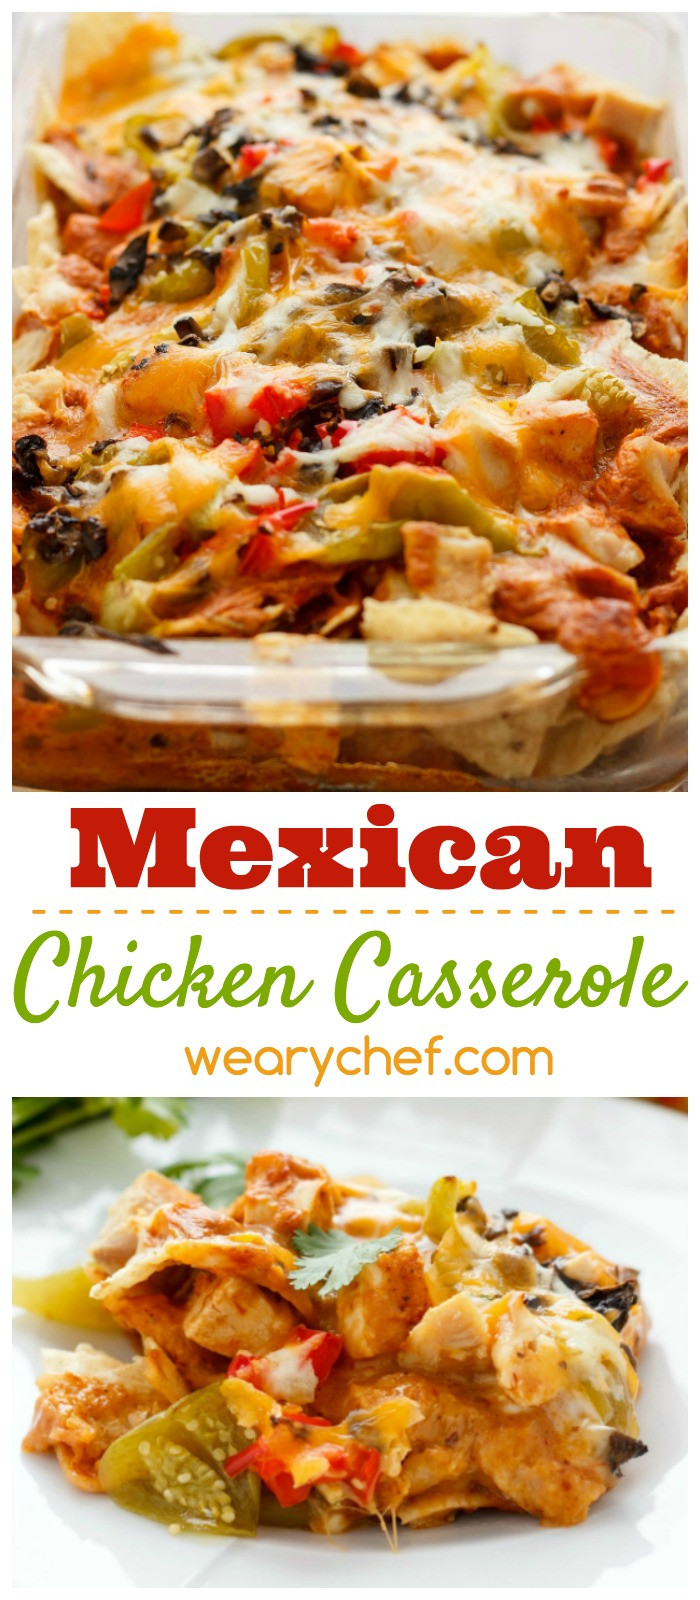 Mexican Casserole With Tortilla Chips  Mexican Chicken Casserole with Tortilla Chips The Weary Chef